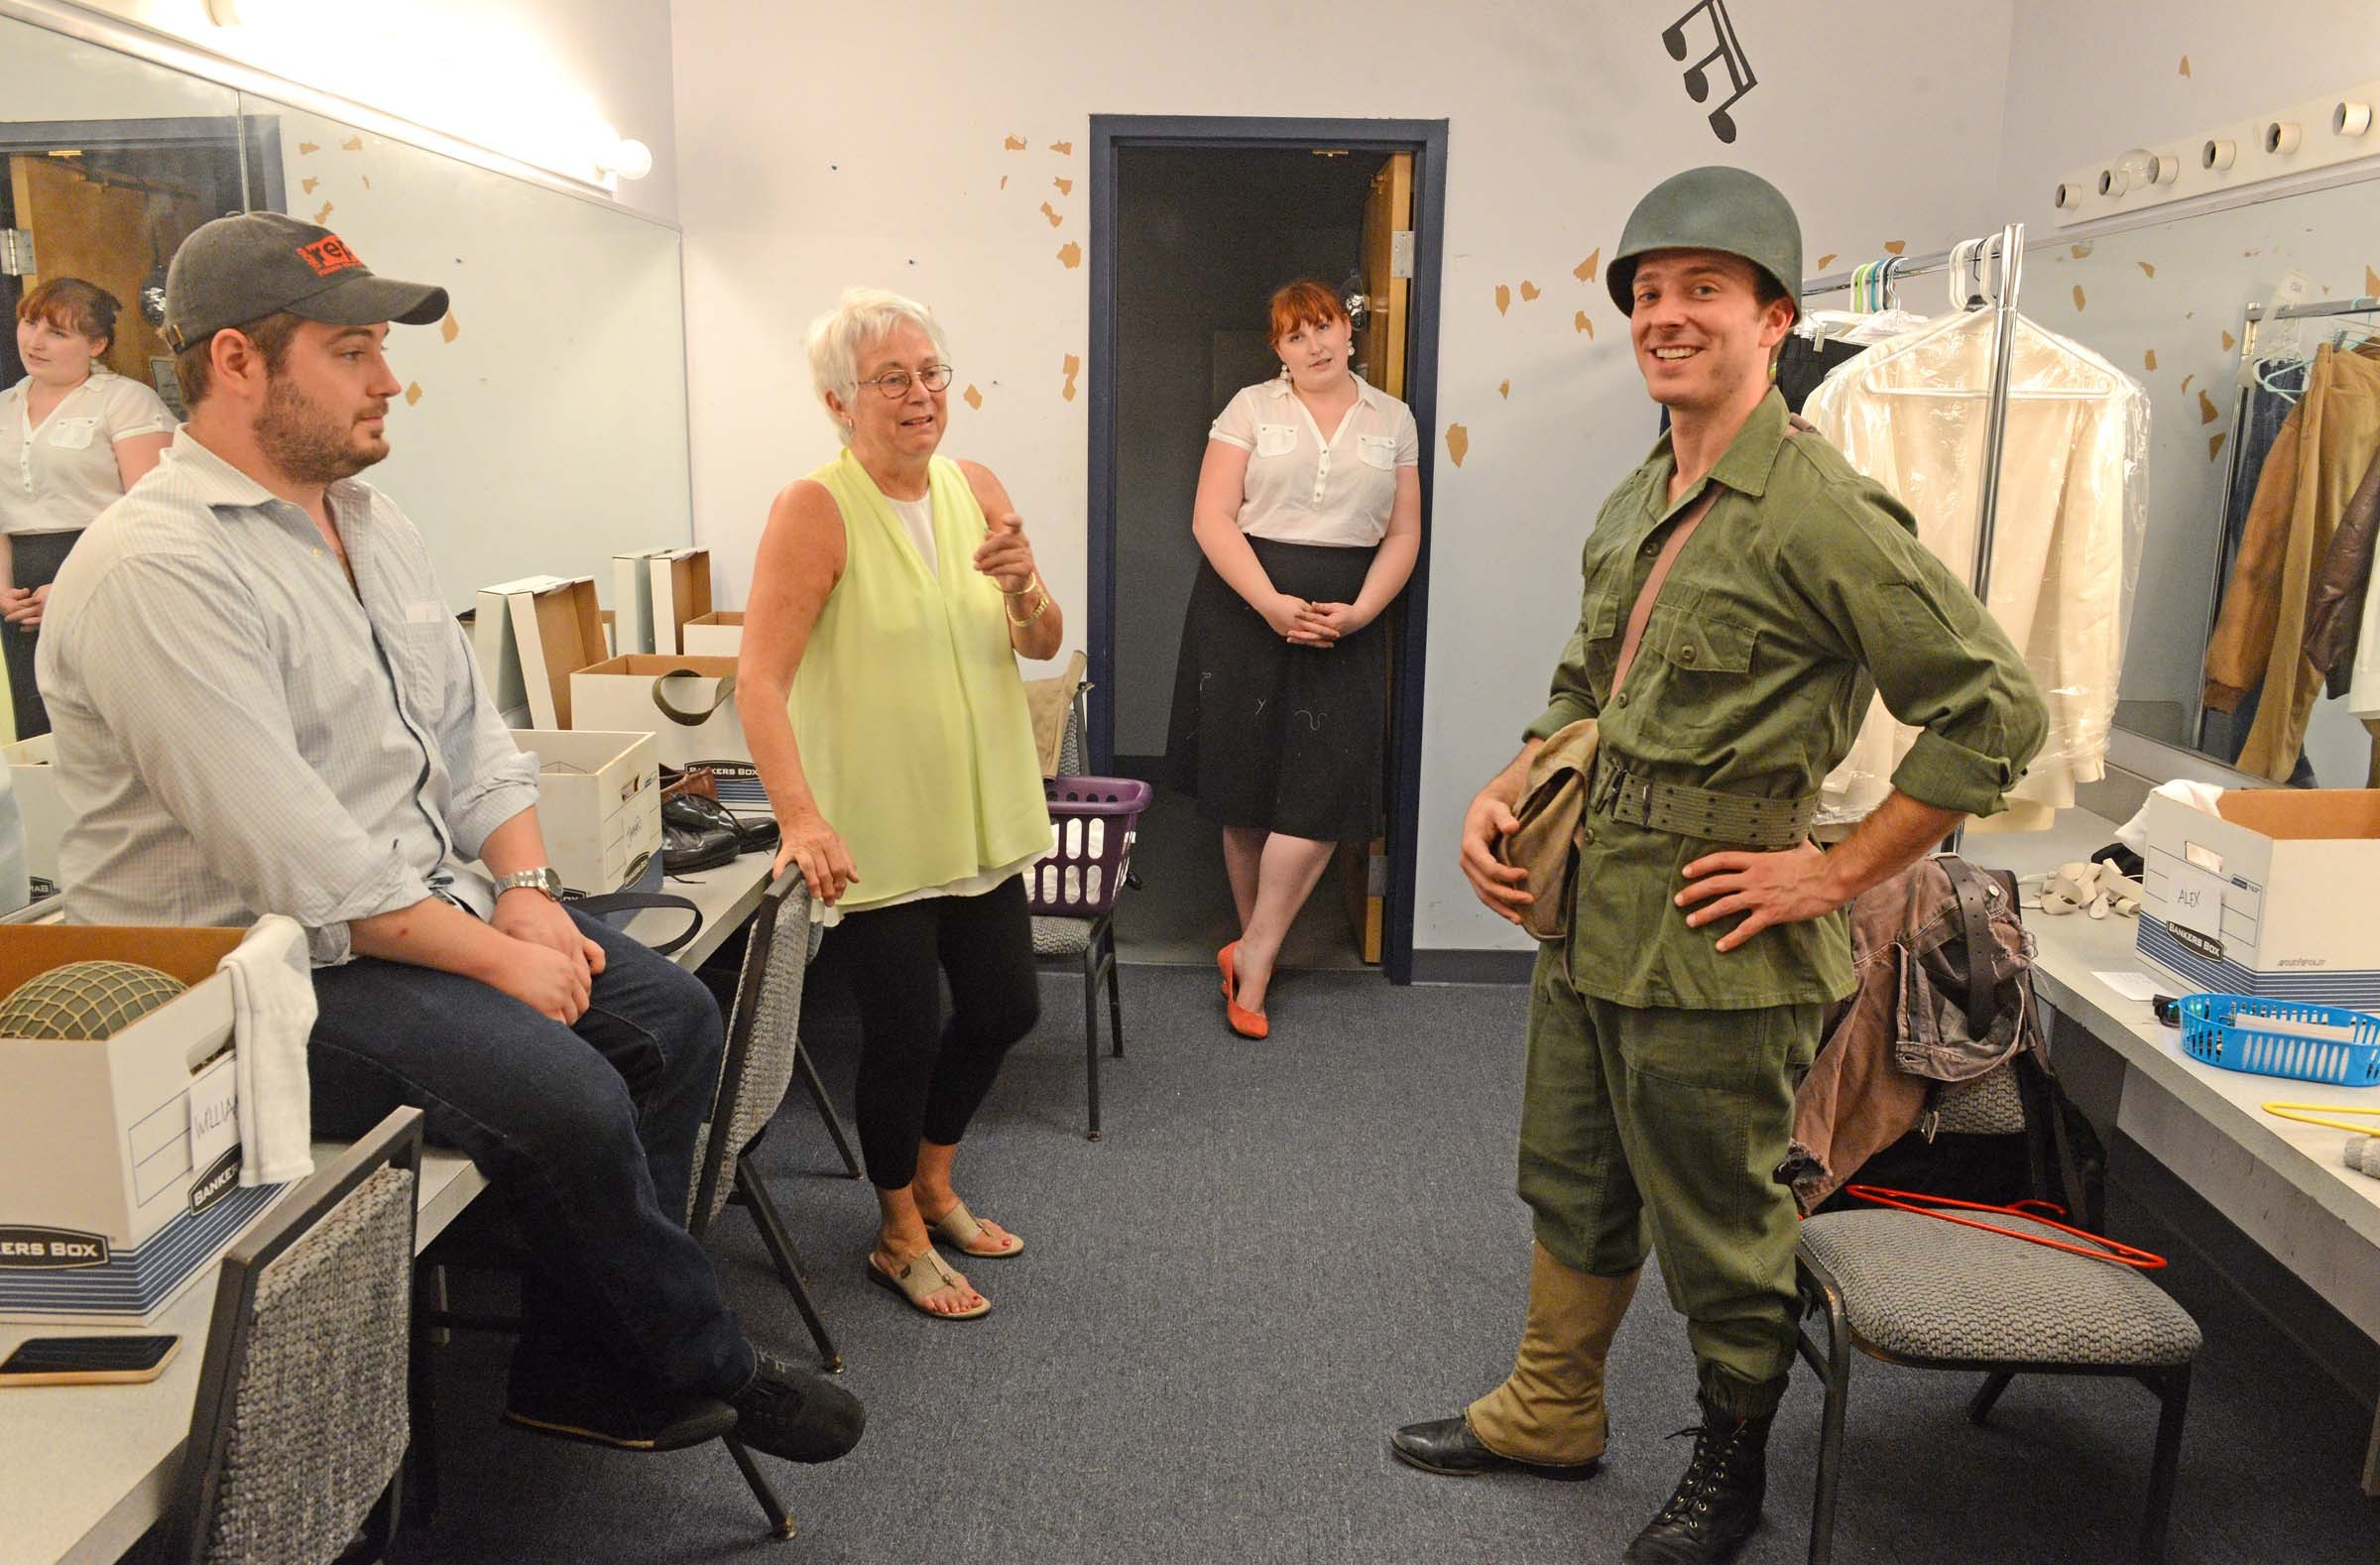 Director Kniffen sits in on a fitting for actor Alexander Sapp, right, with costume designer Sue Griffin and costumer Ruth Hedberg. - SCOTT ELMQUIST